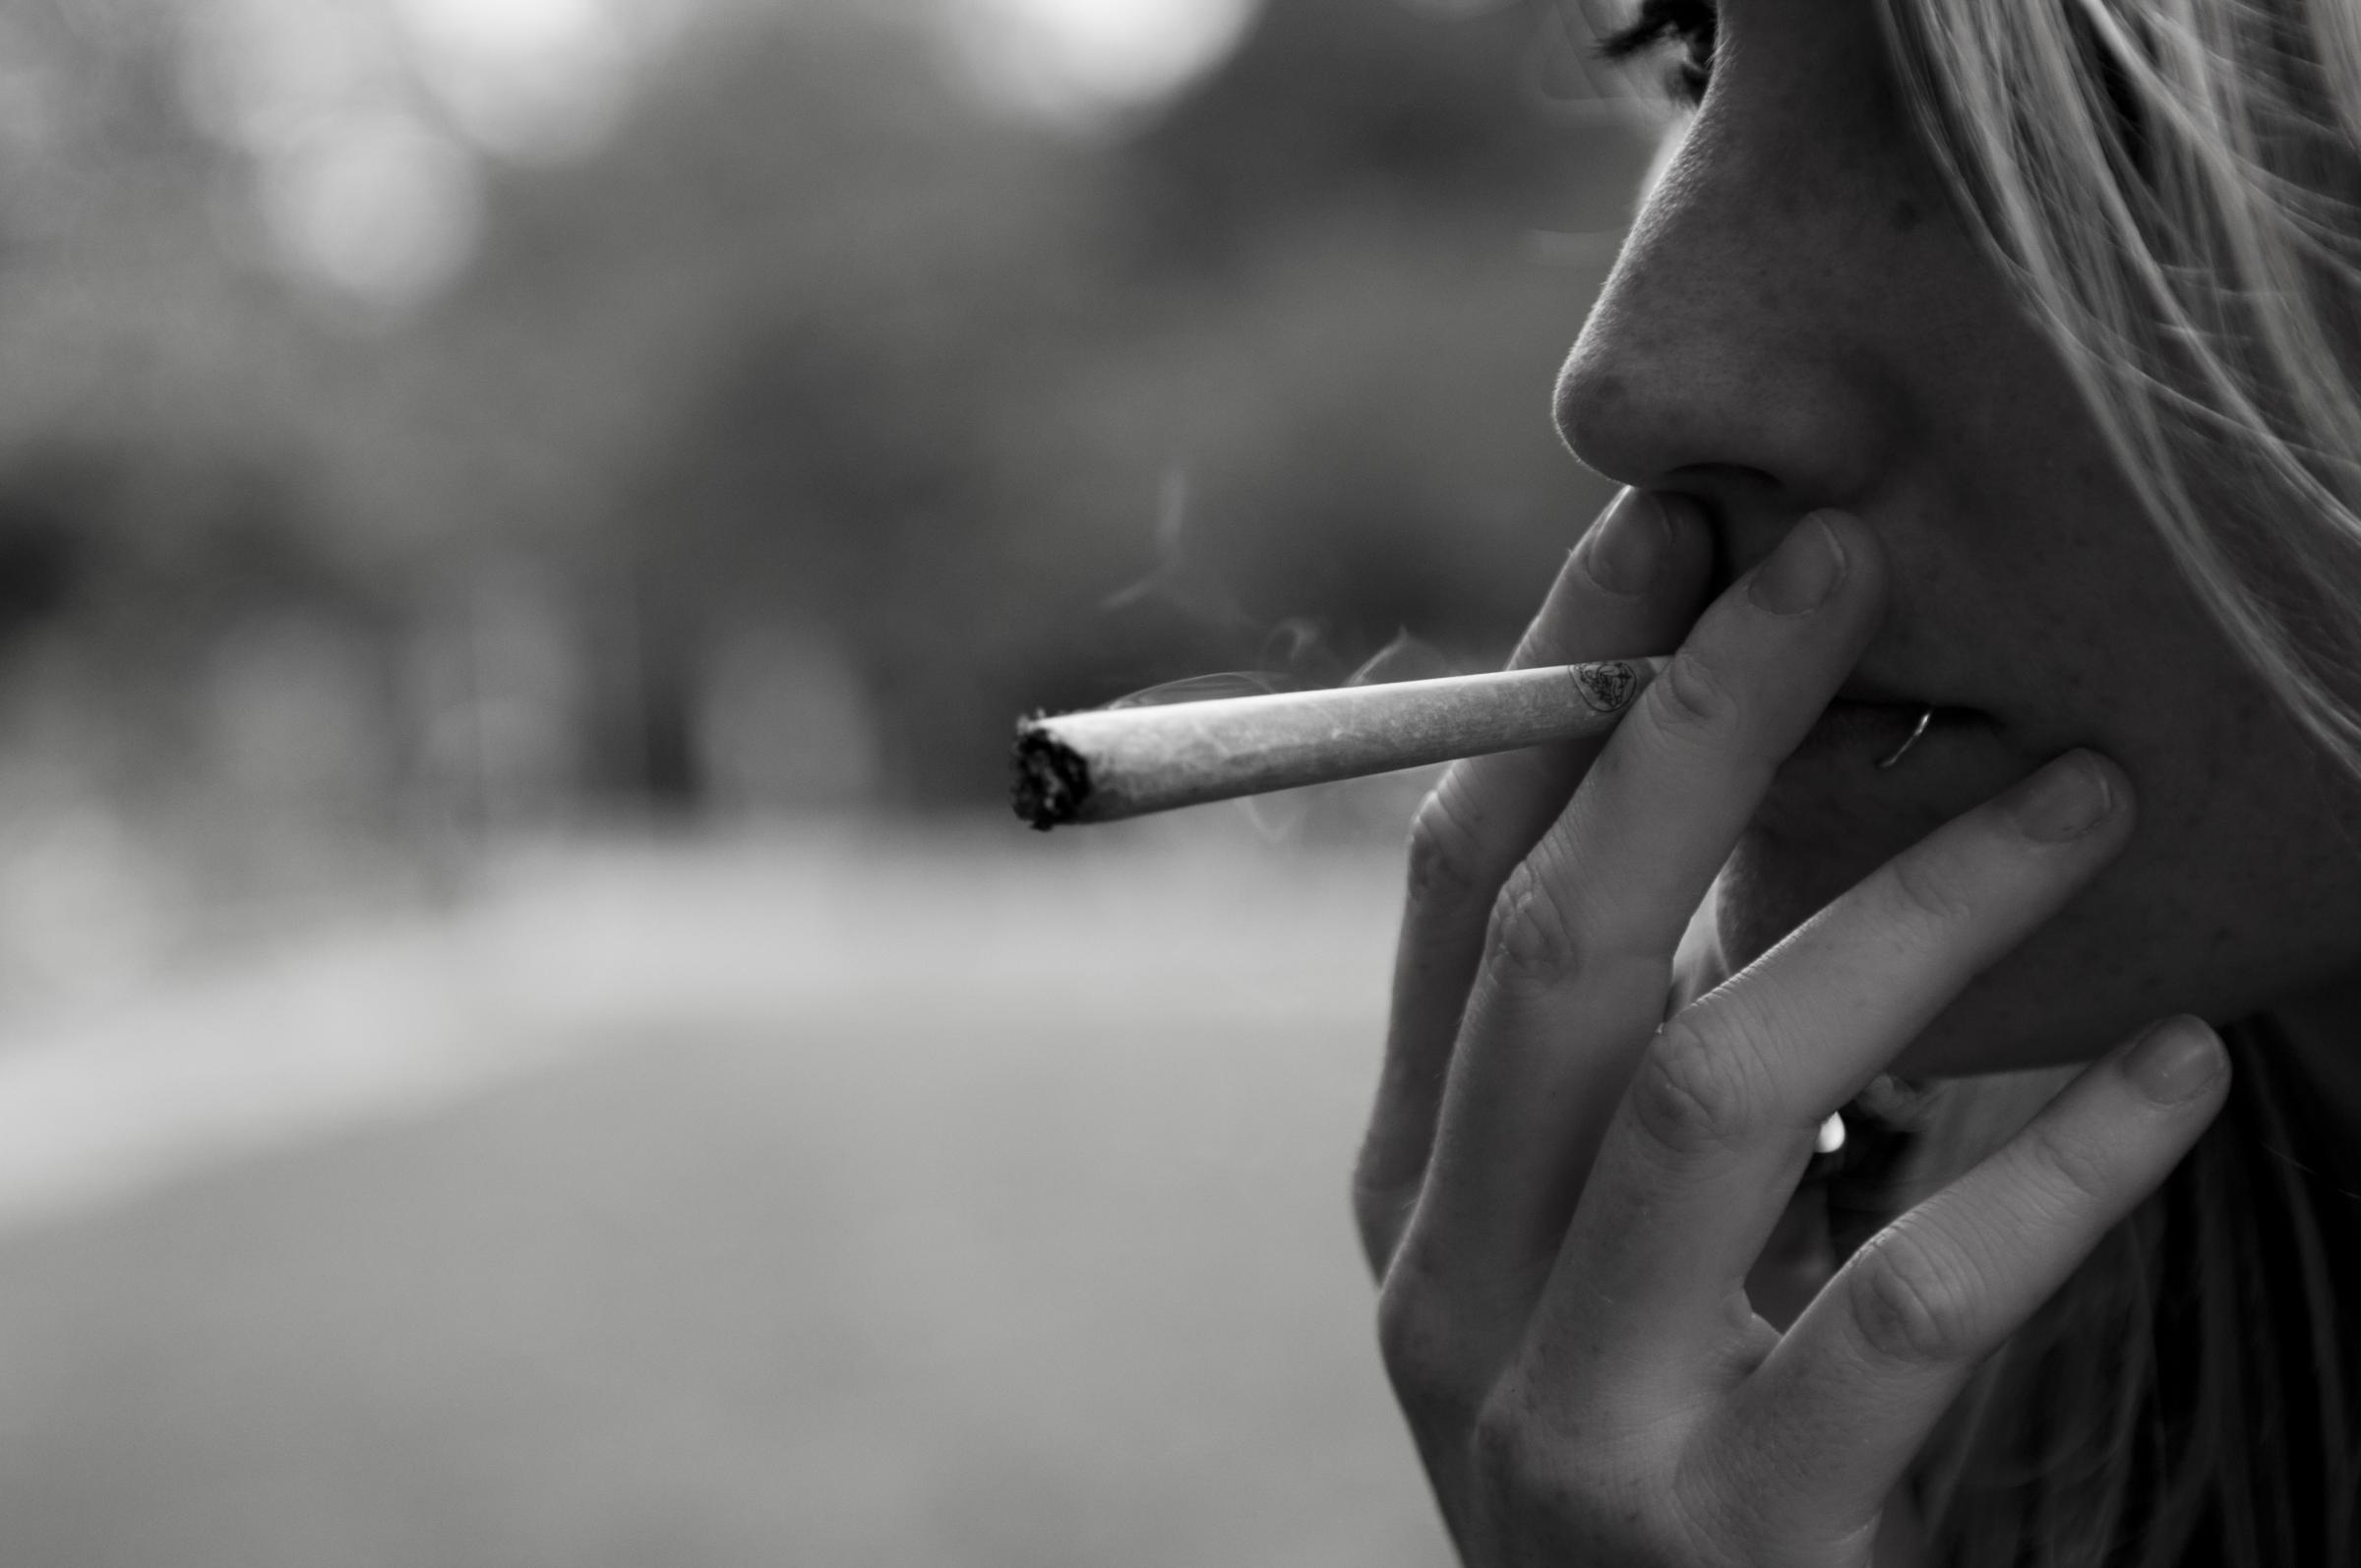 A woman smoking cannabis (stock photo) This file is licensed under the Creative Commons Attribution 2.0 Generic license..